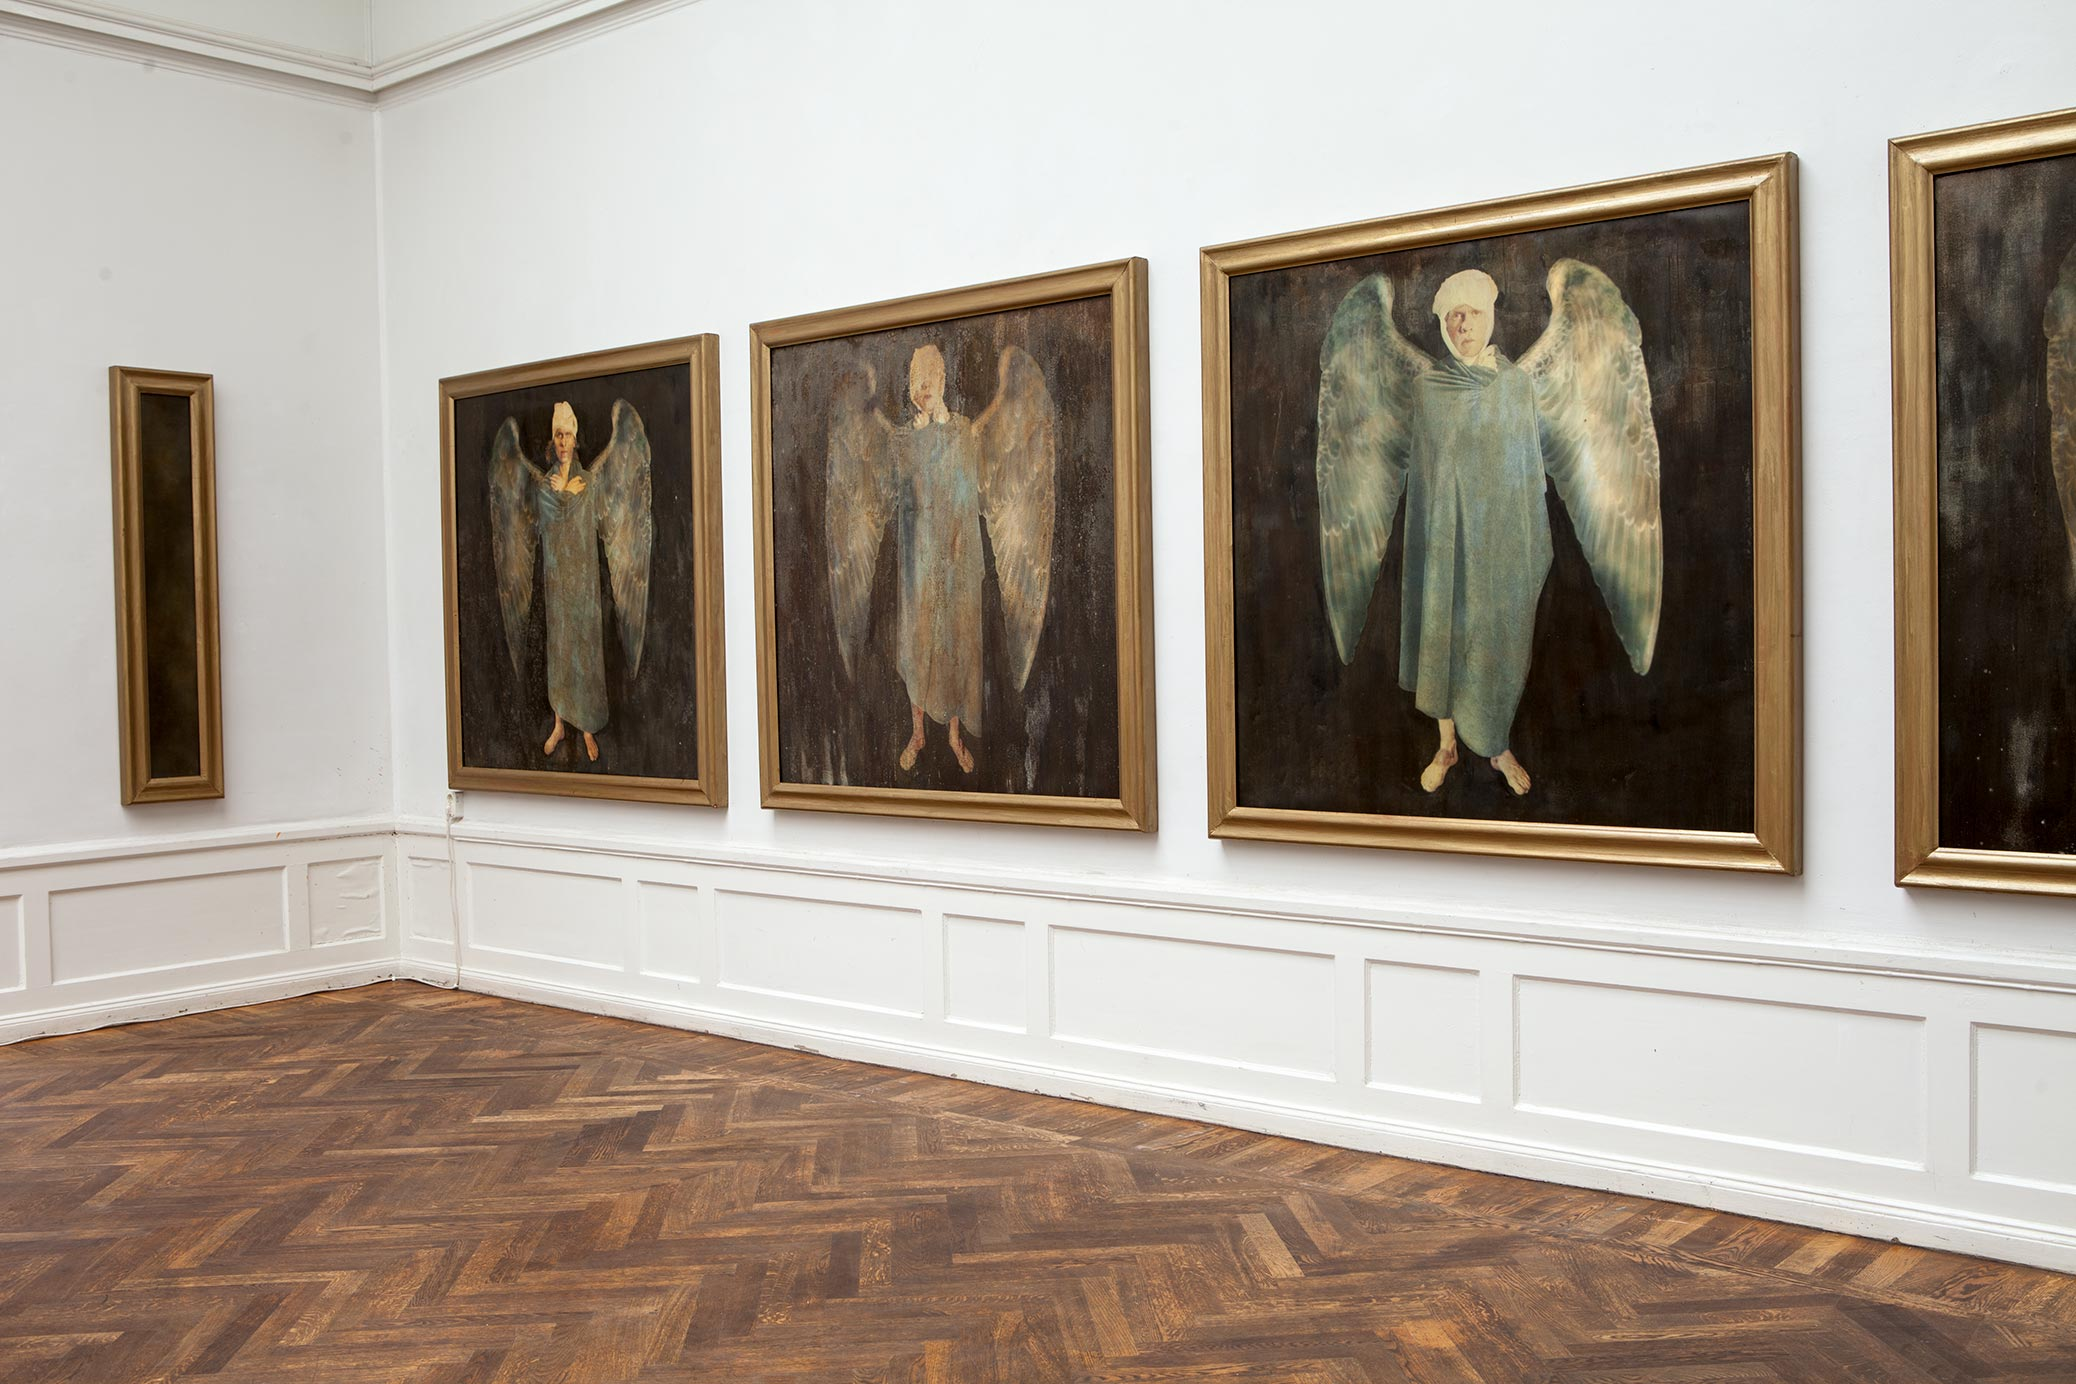 Being Björn Perborg, exhibition at Konstnärshuset. Flygfän, paintings of wounded angels.